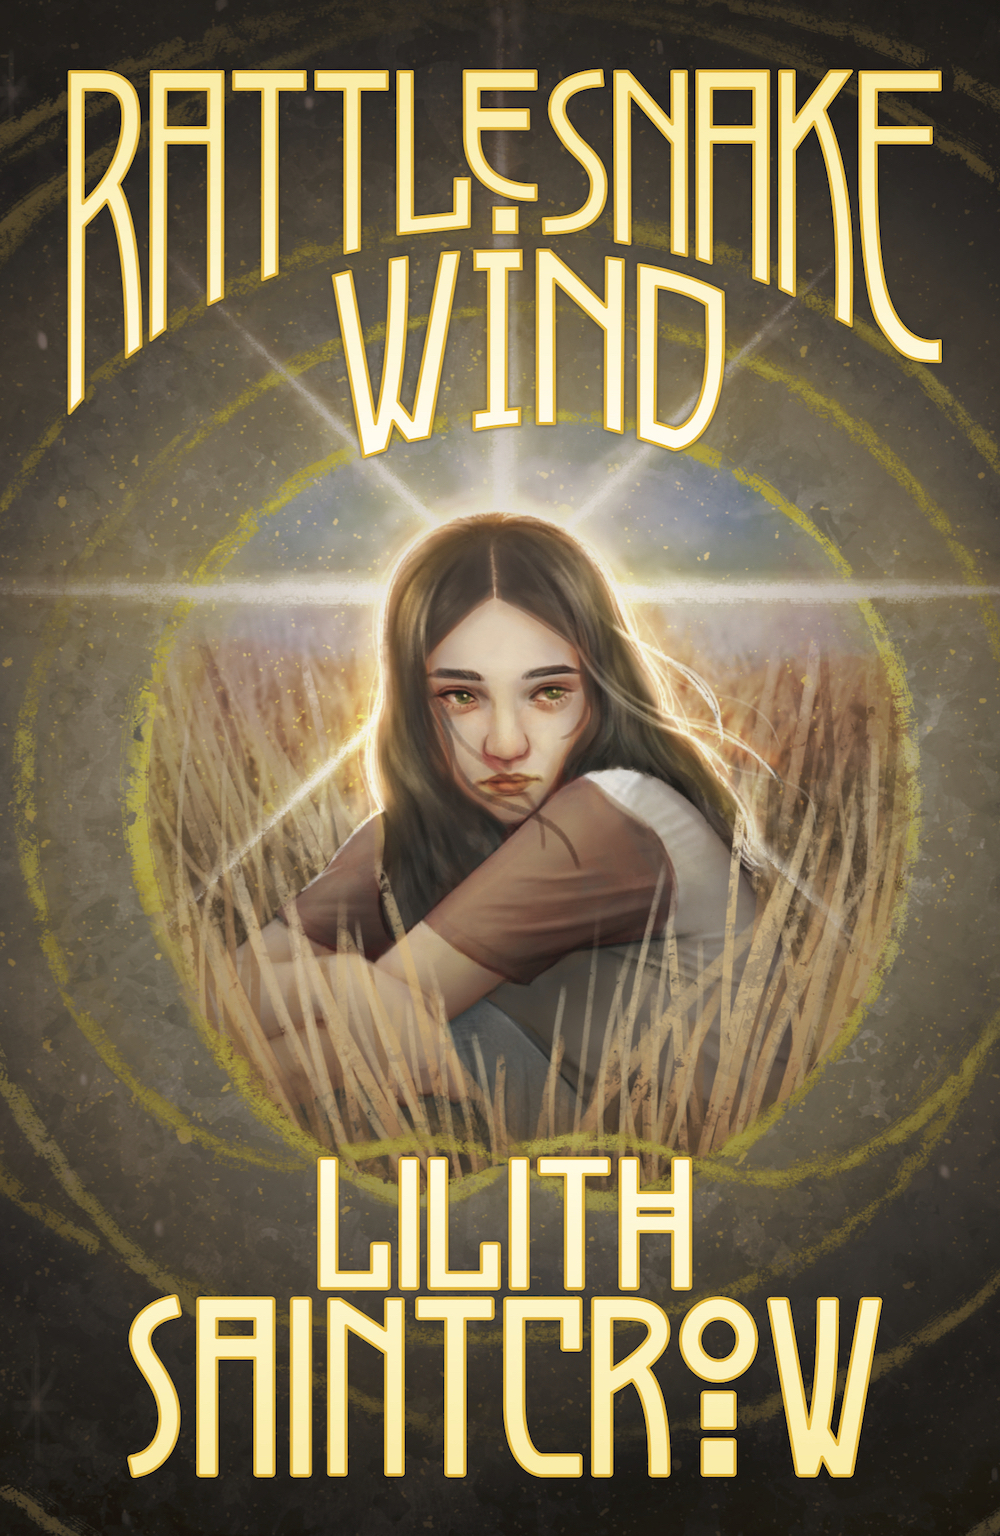 Cover image for Rattlesnake Wind